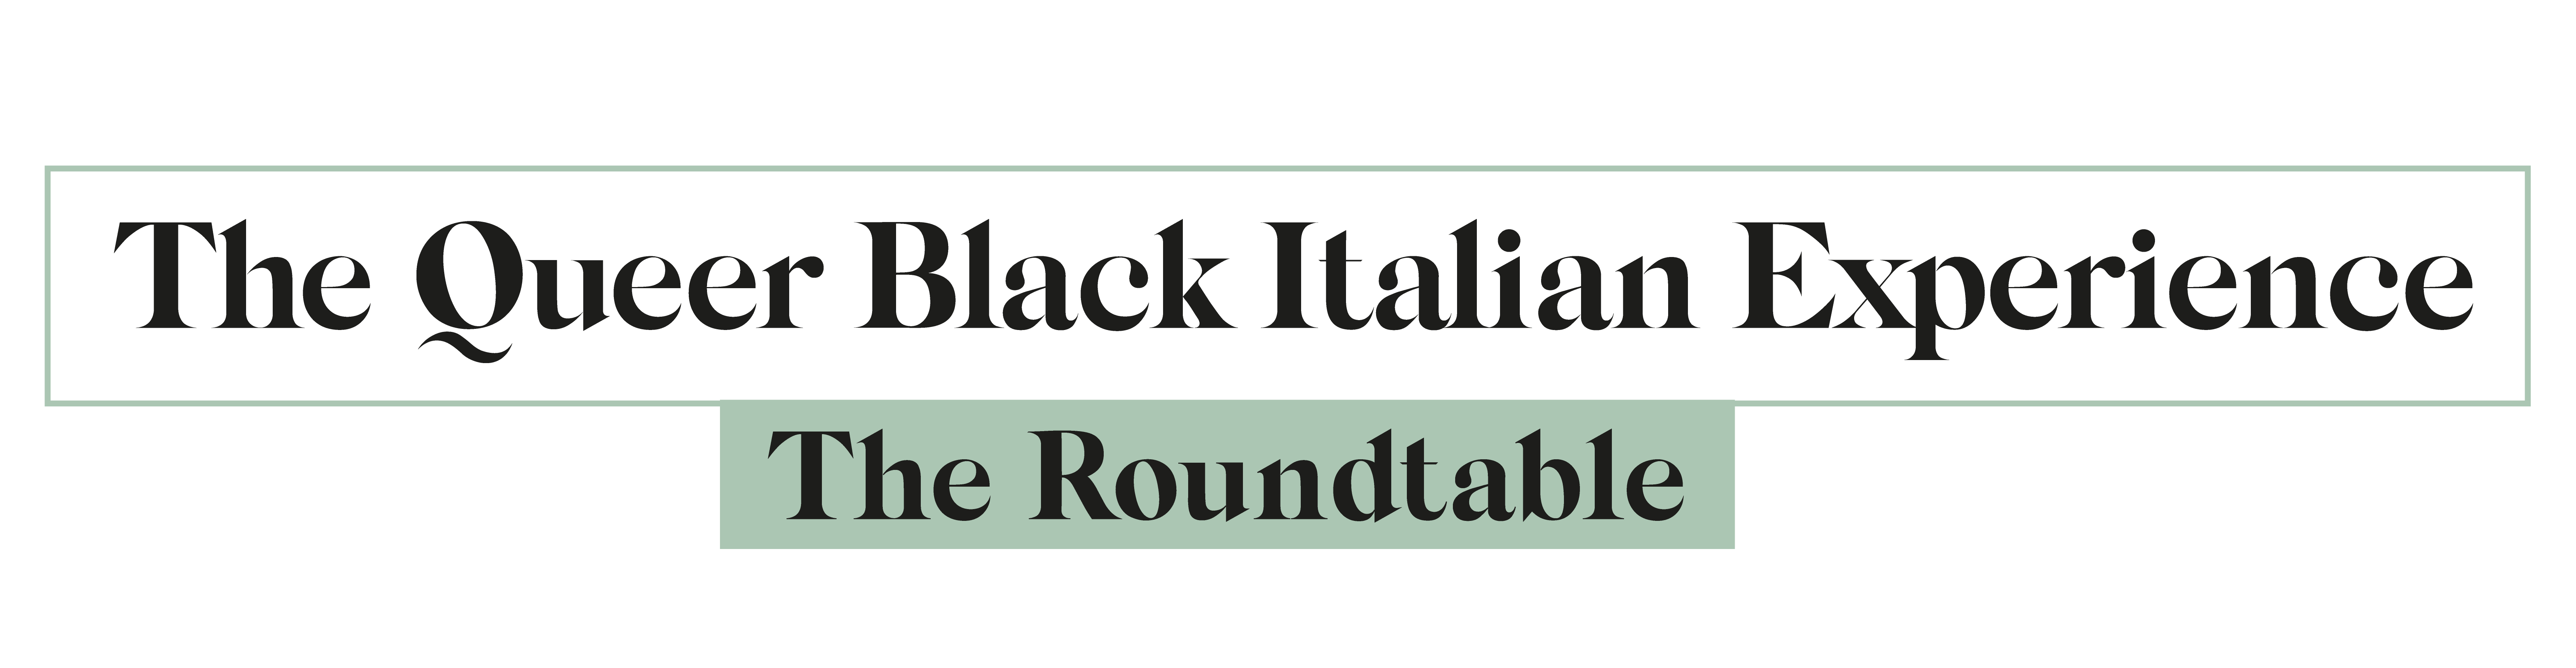 The Quee Black Italian Experience